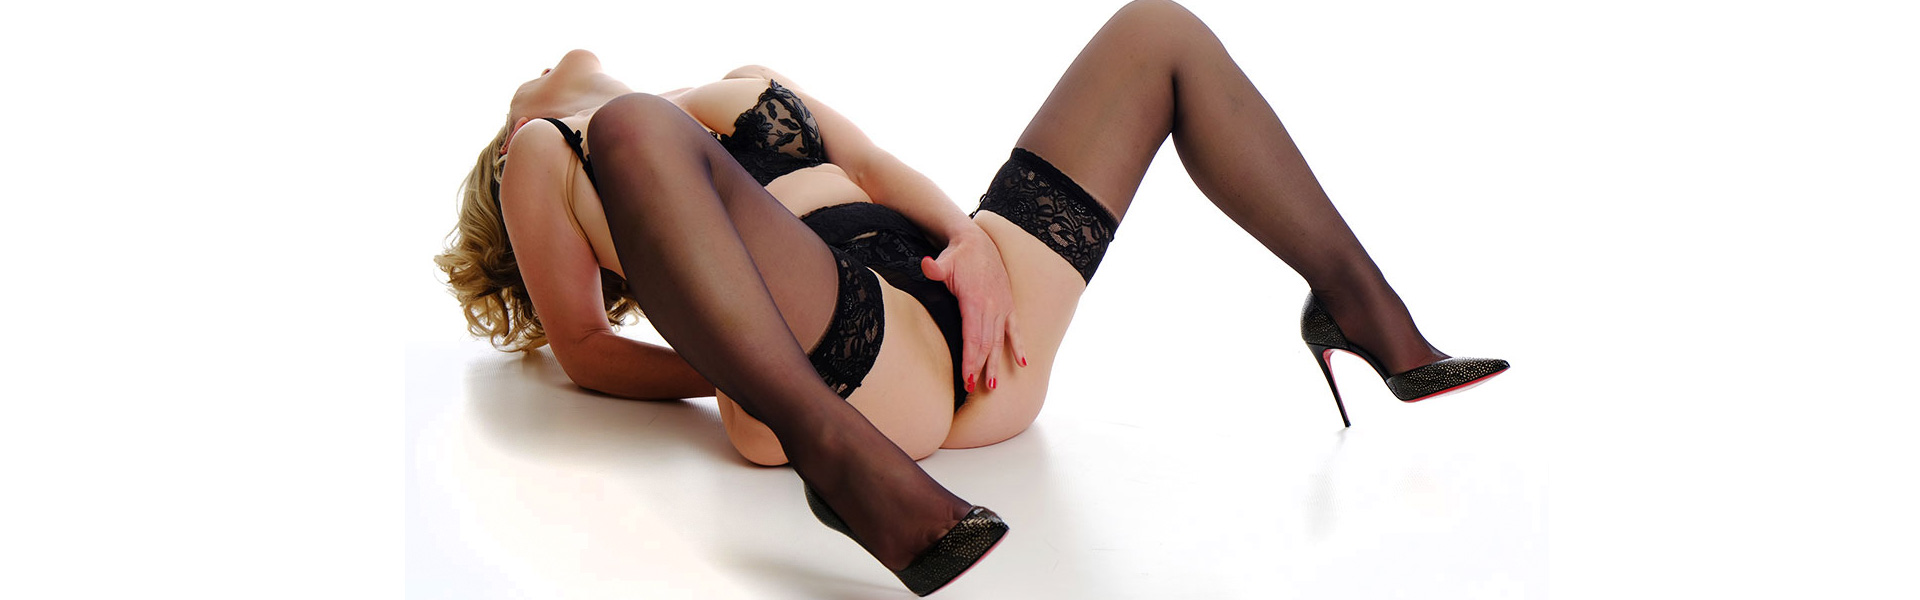 escort-for-couples-surrey-